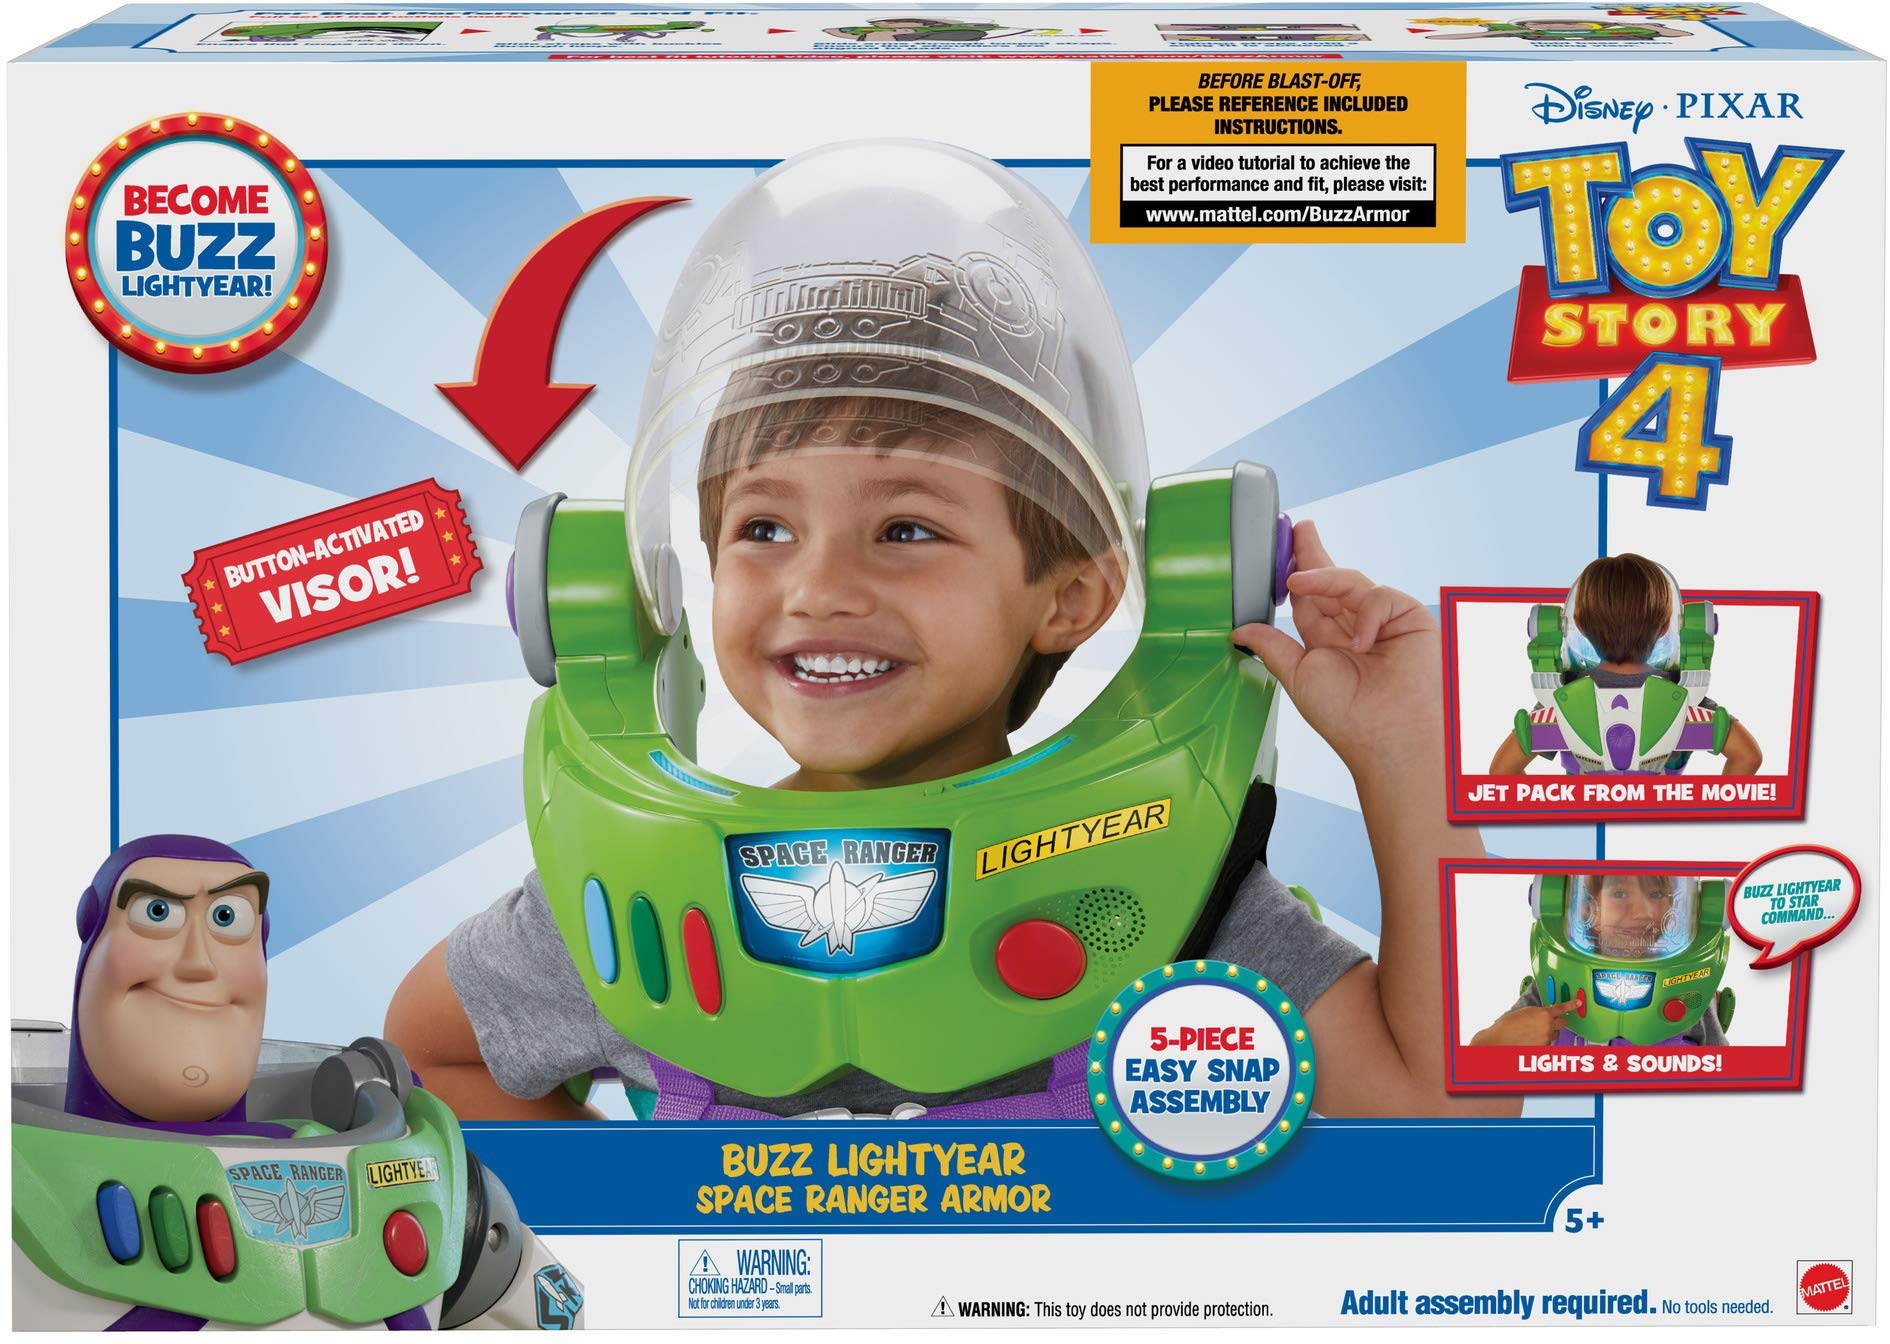 Toy Story Disney Pixar 4 Buzz Lightyear Space Ranger Armor with Jet Pack by Toy Story (Image #6)